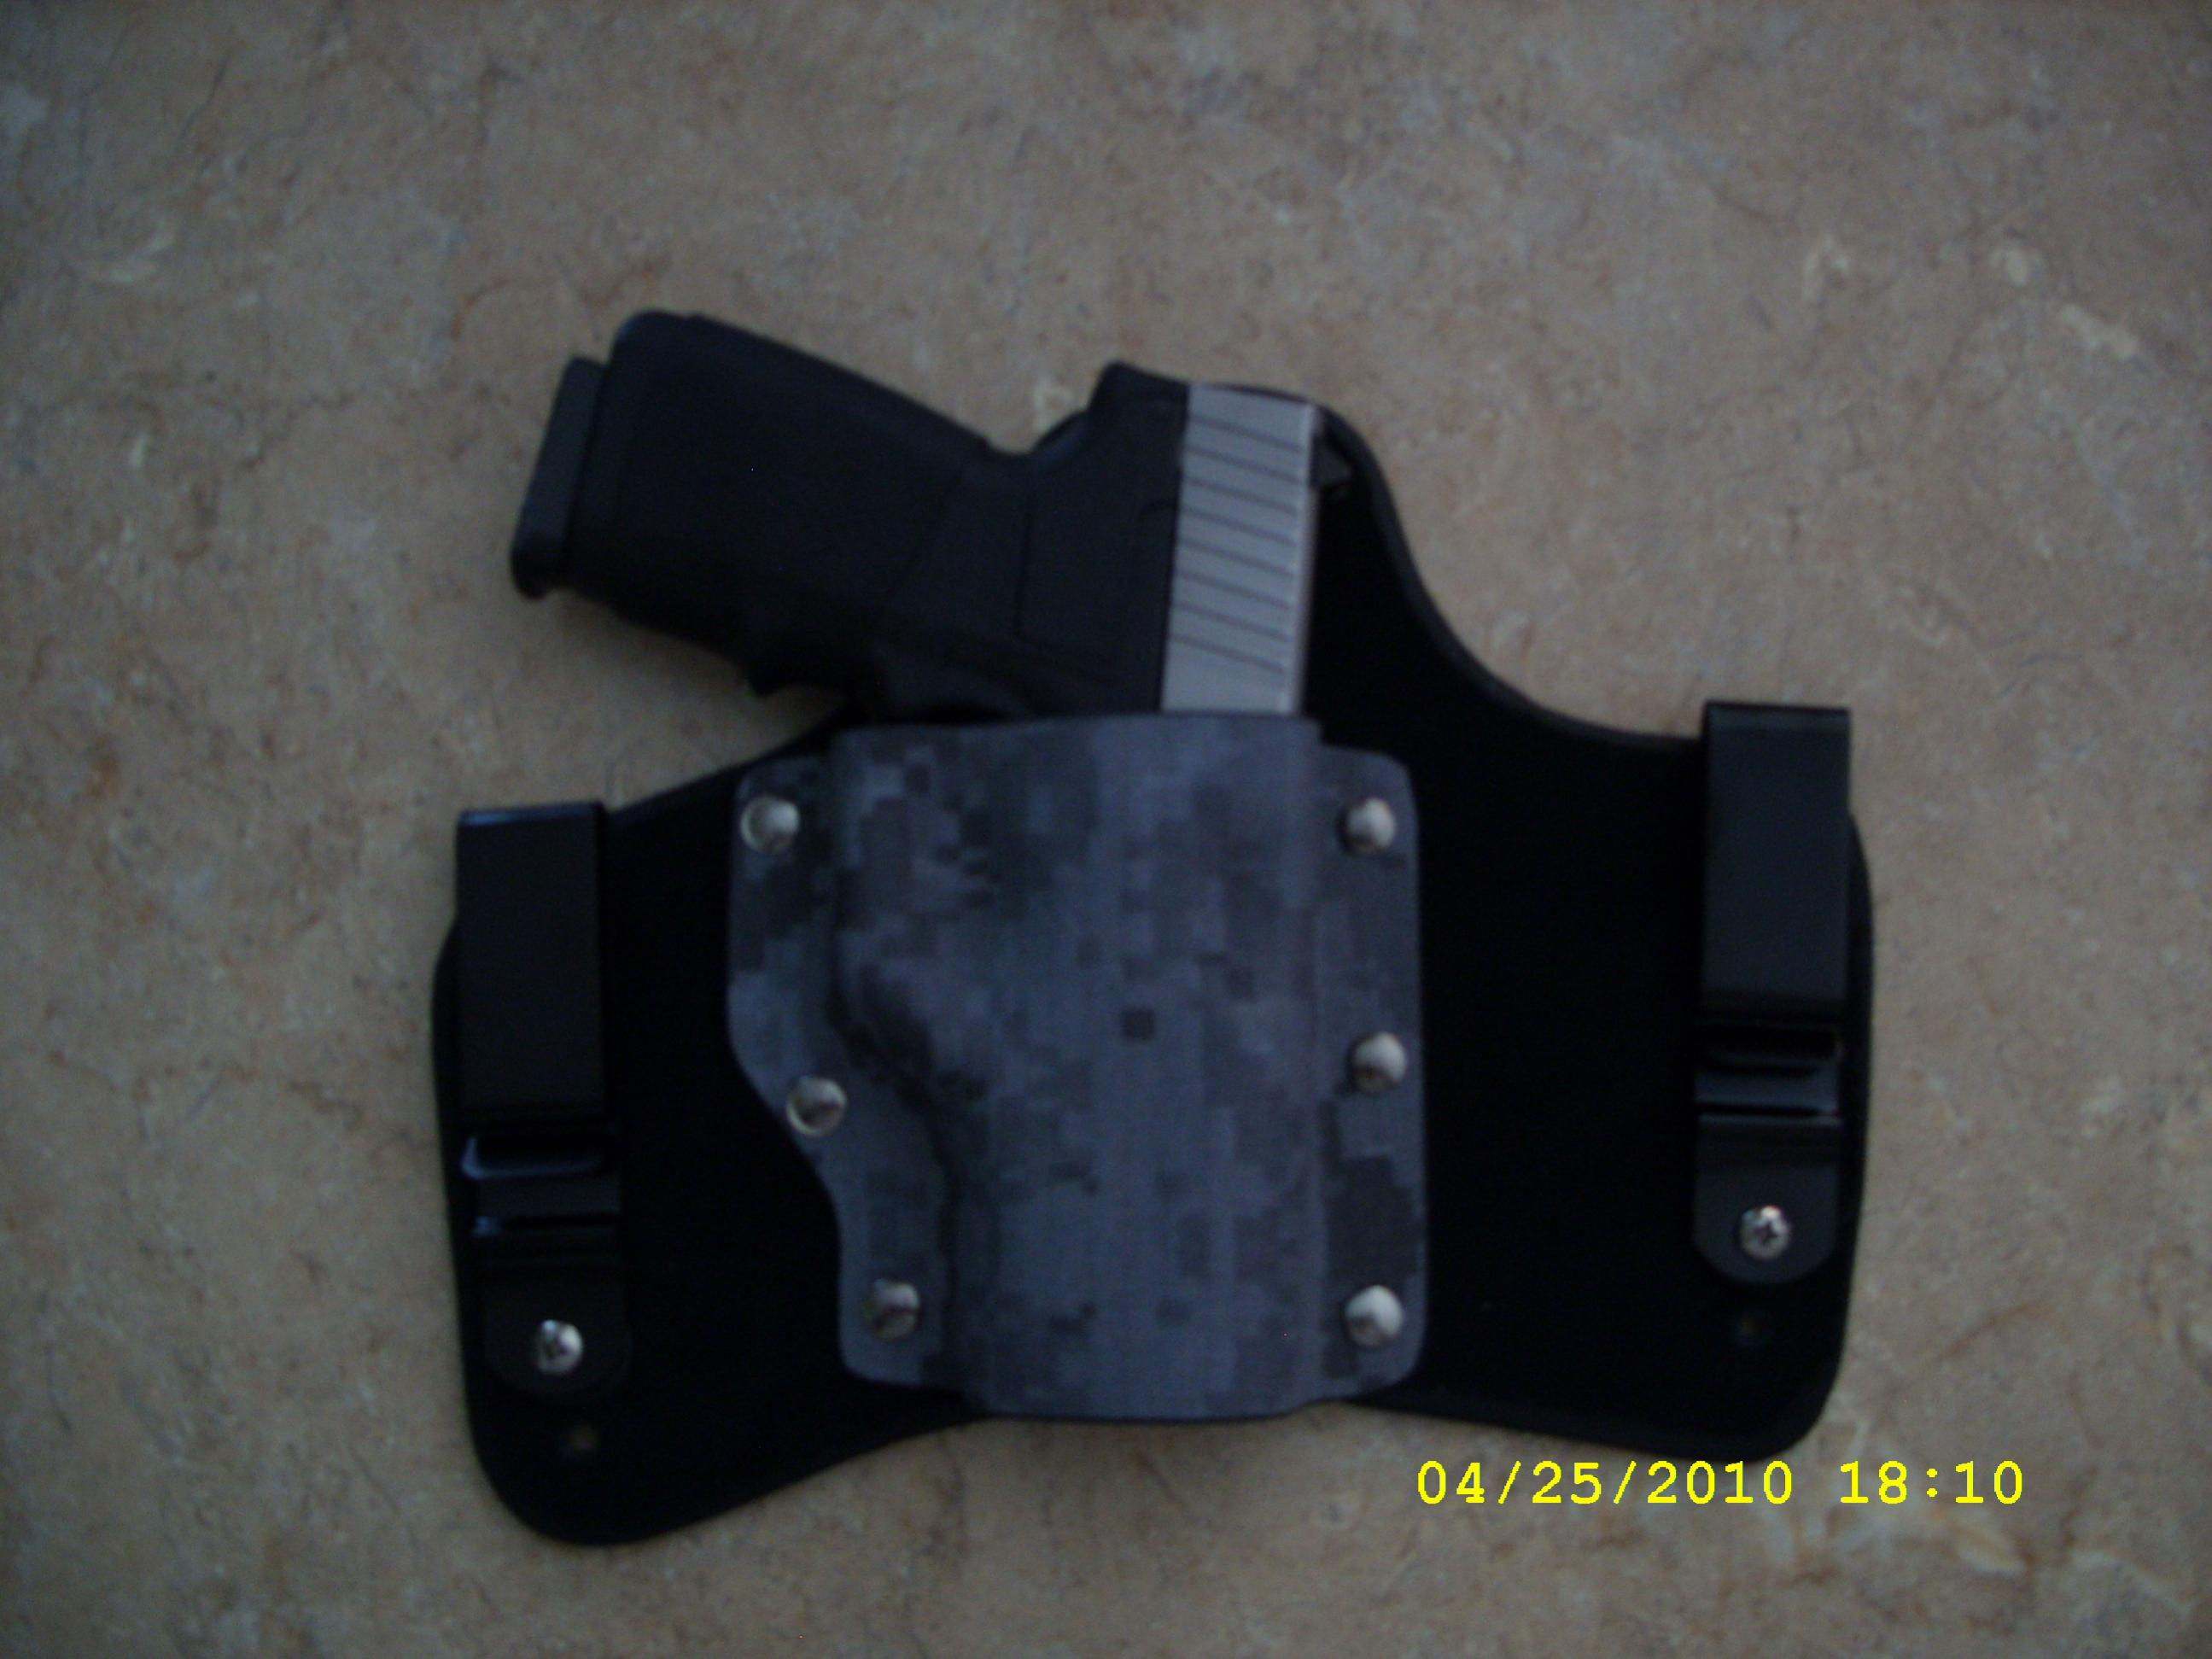 Let's See Your Pic's - How You Carry Concealed.-holsters-005.jpg